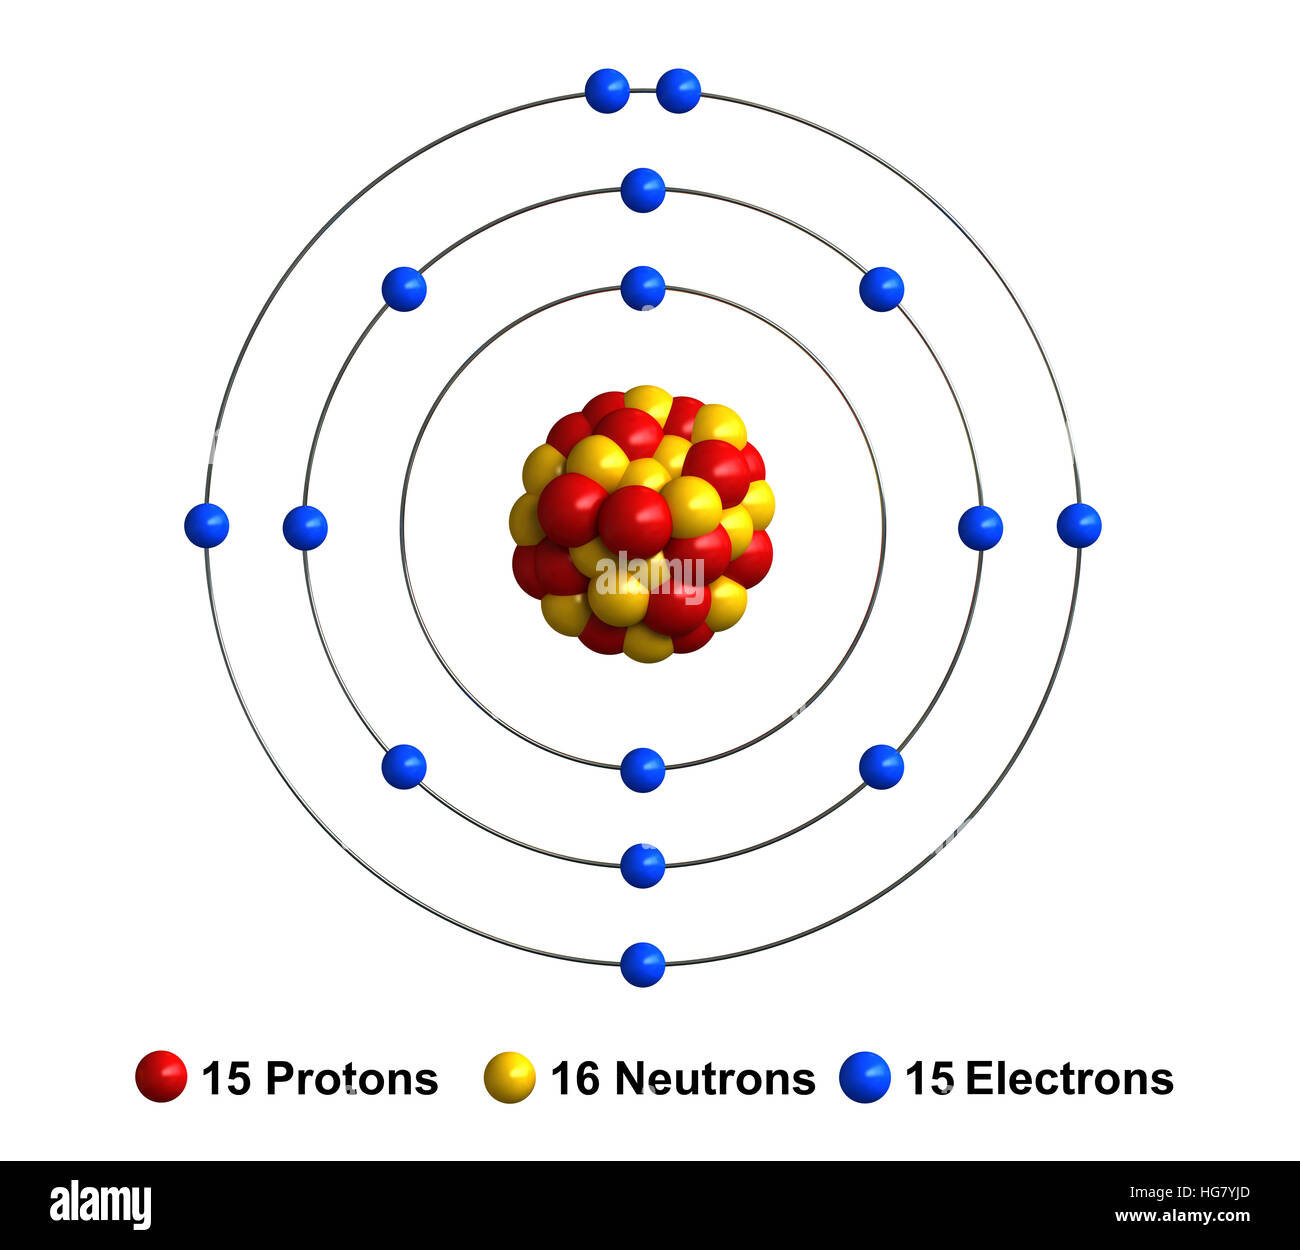 sodium atom diagram land rover discovery trailer wiring protons neutrons stock photos and